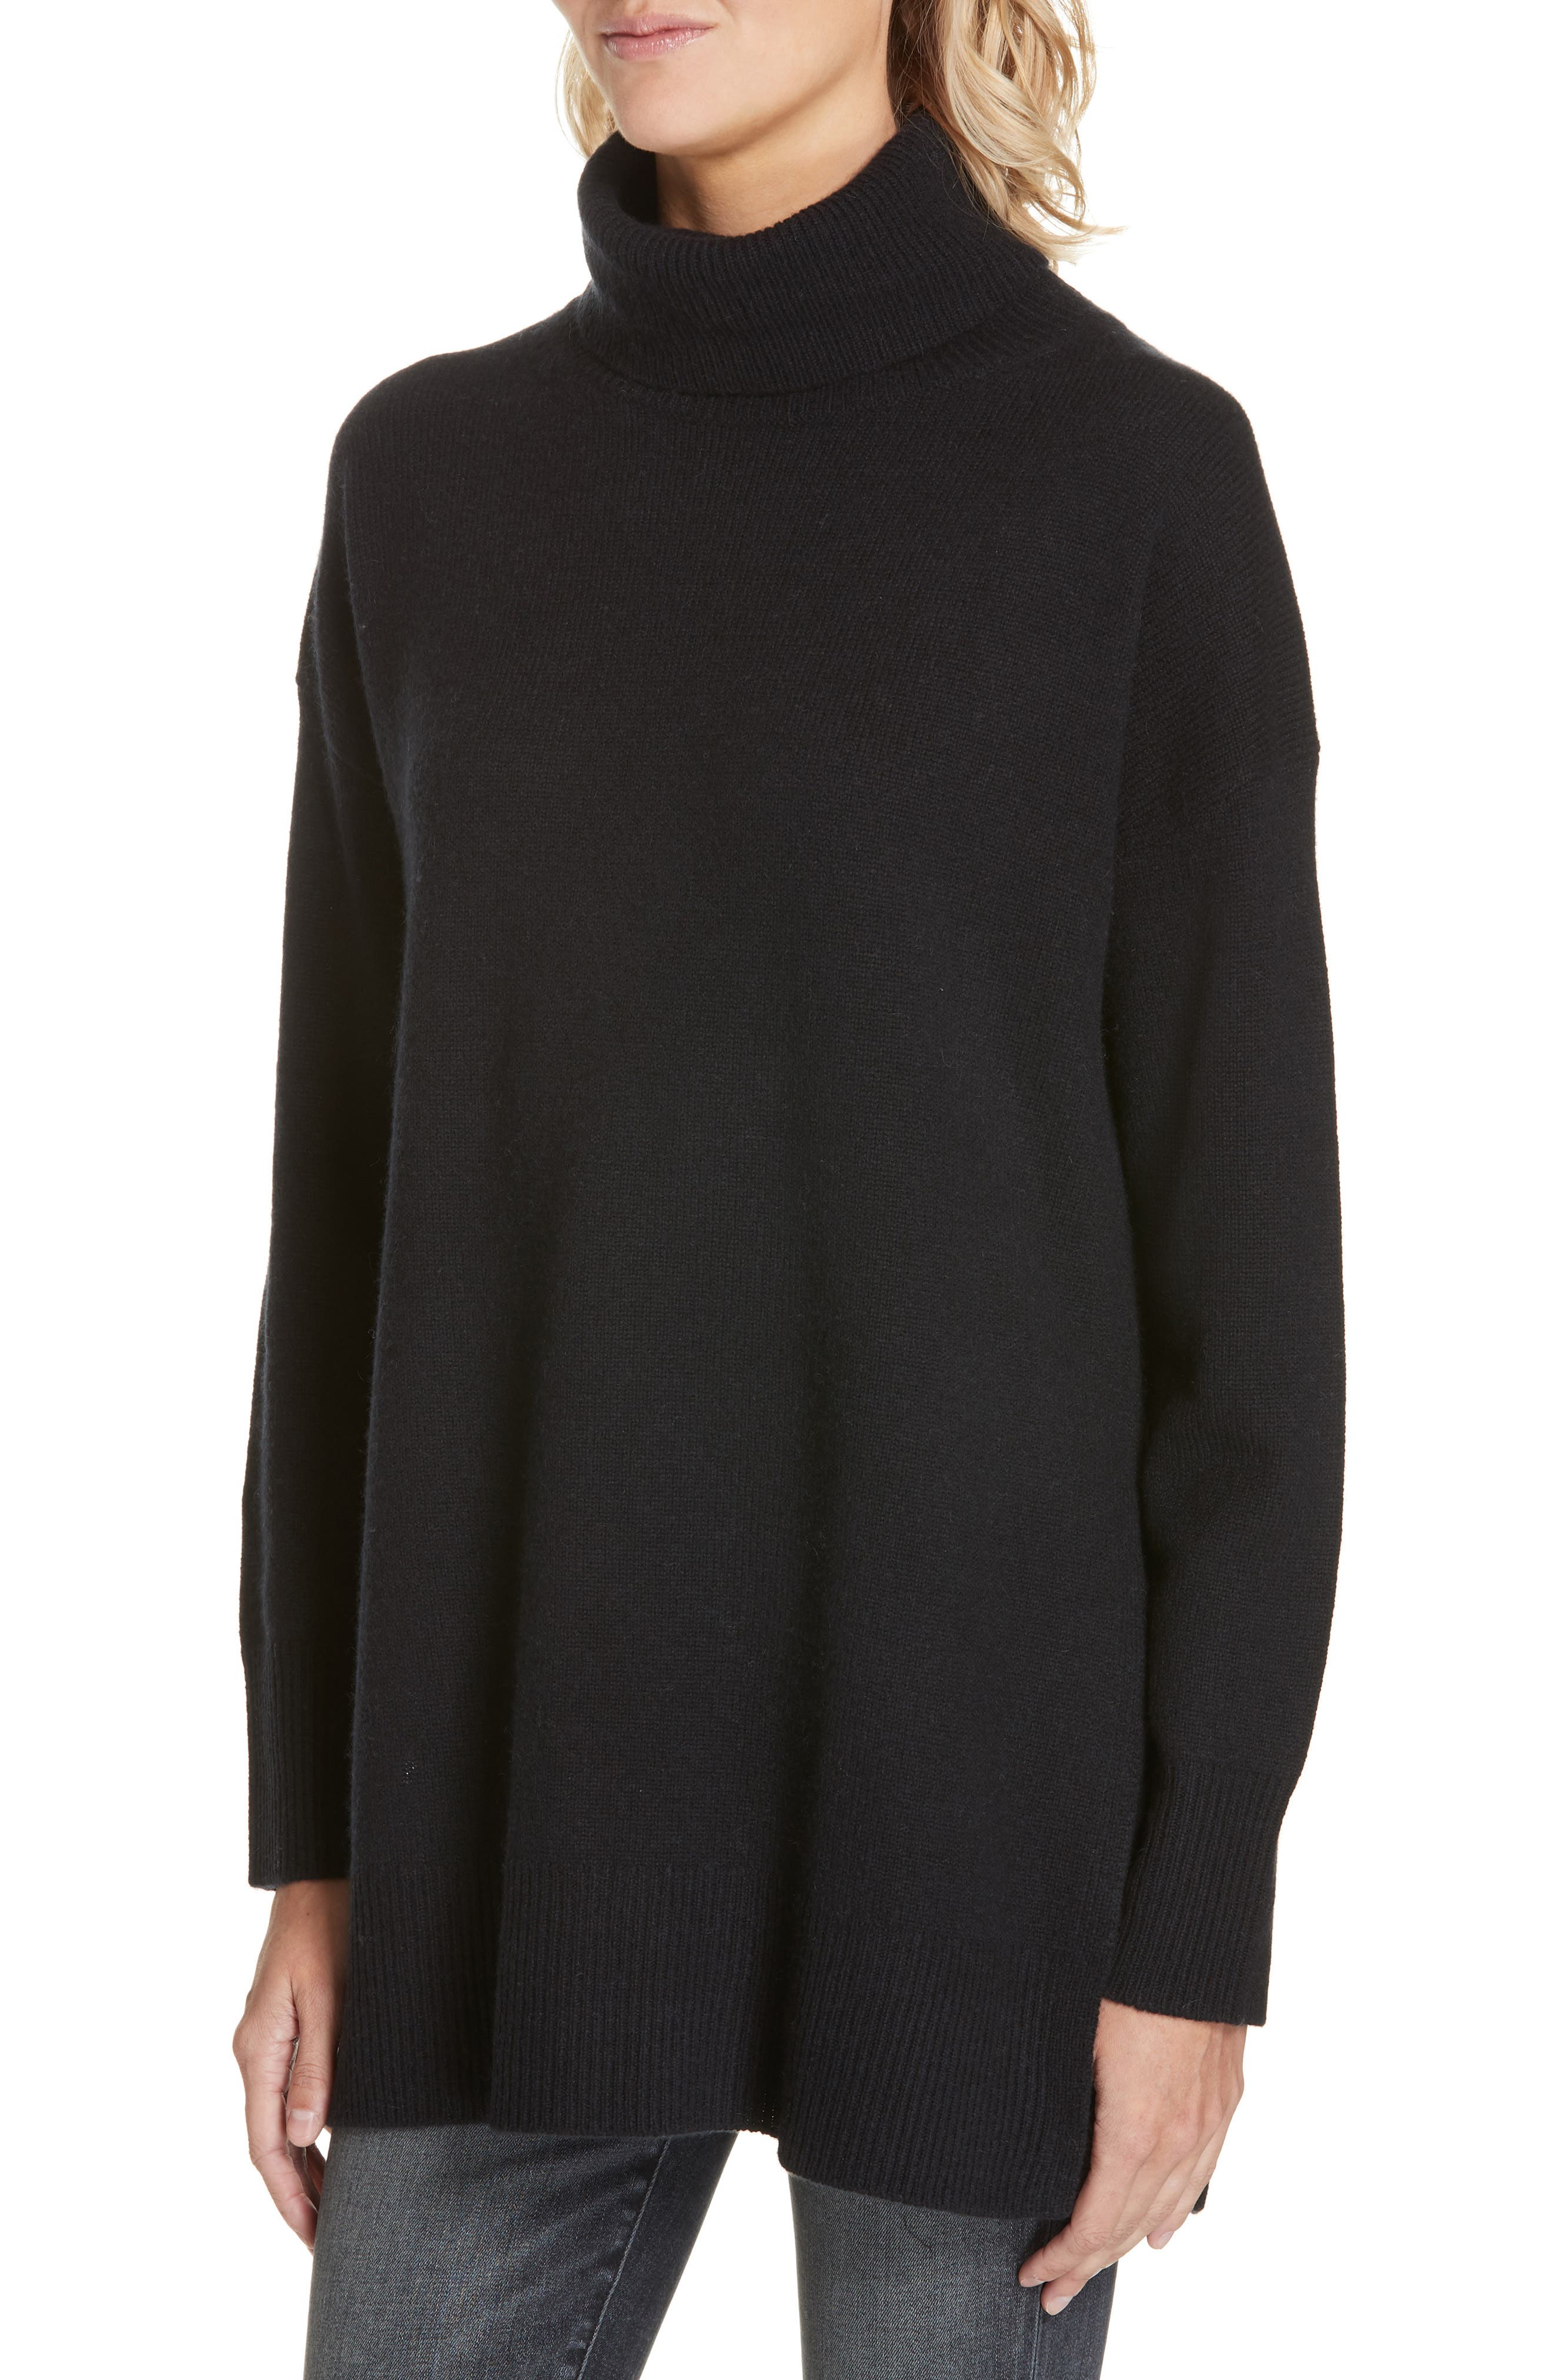 NORDSTROM SIGNATURE,                             Cashmere Turtleneck Pullover,                             Alternate thumbnail 4, color,                             001